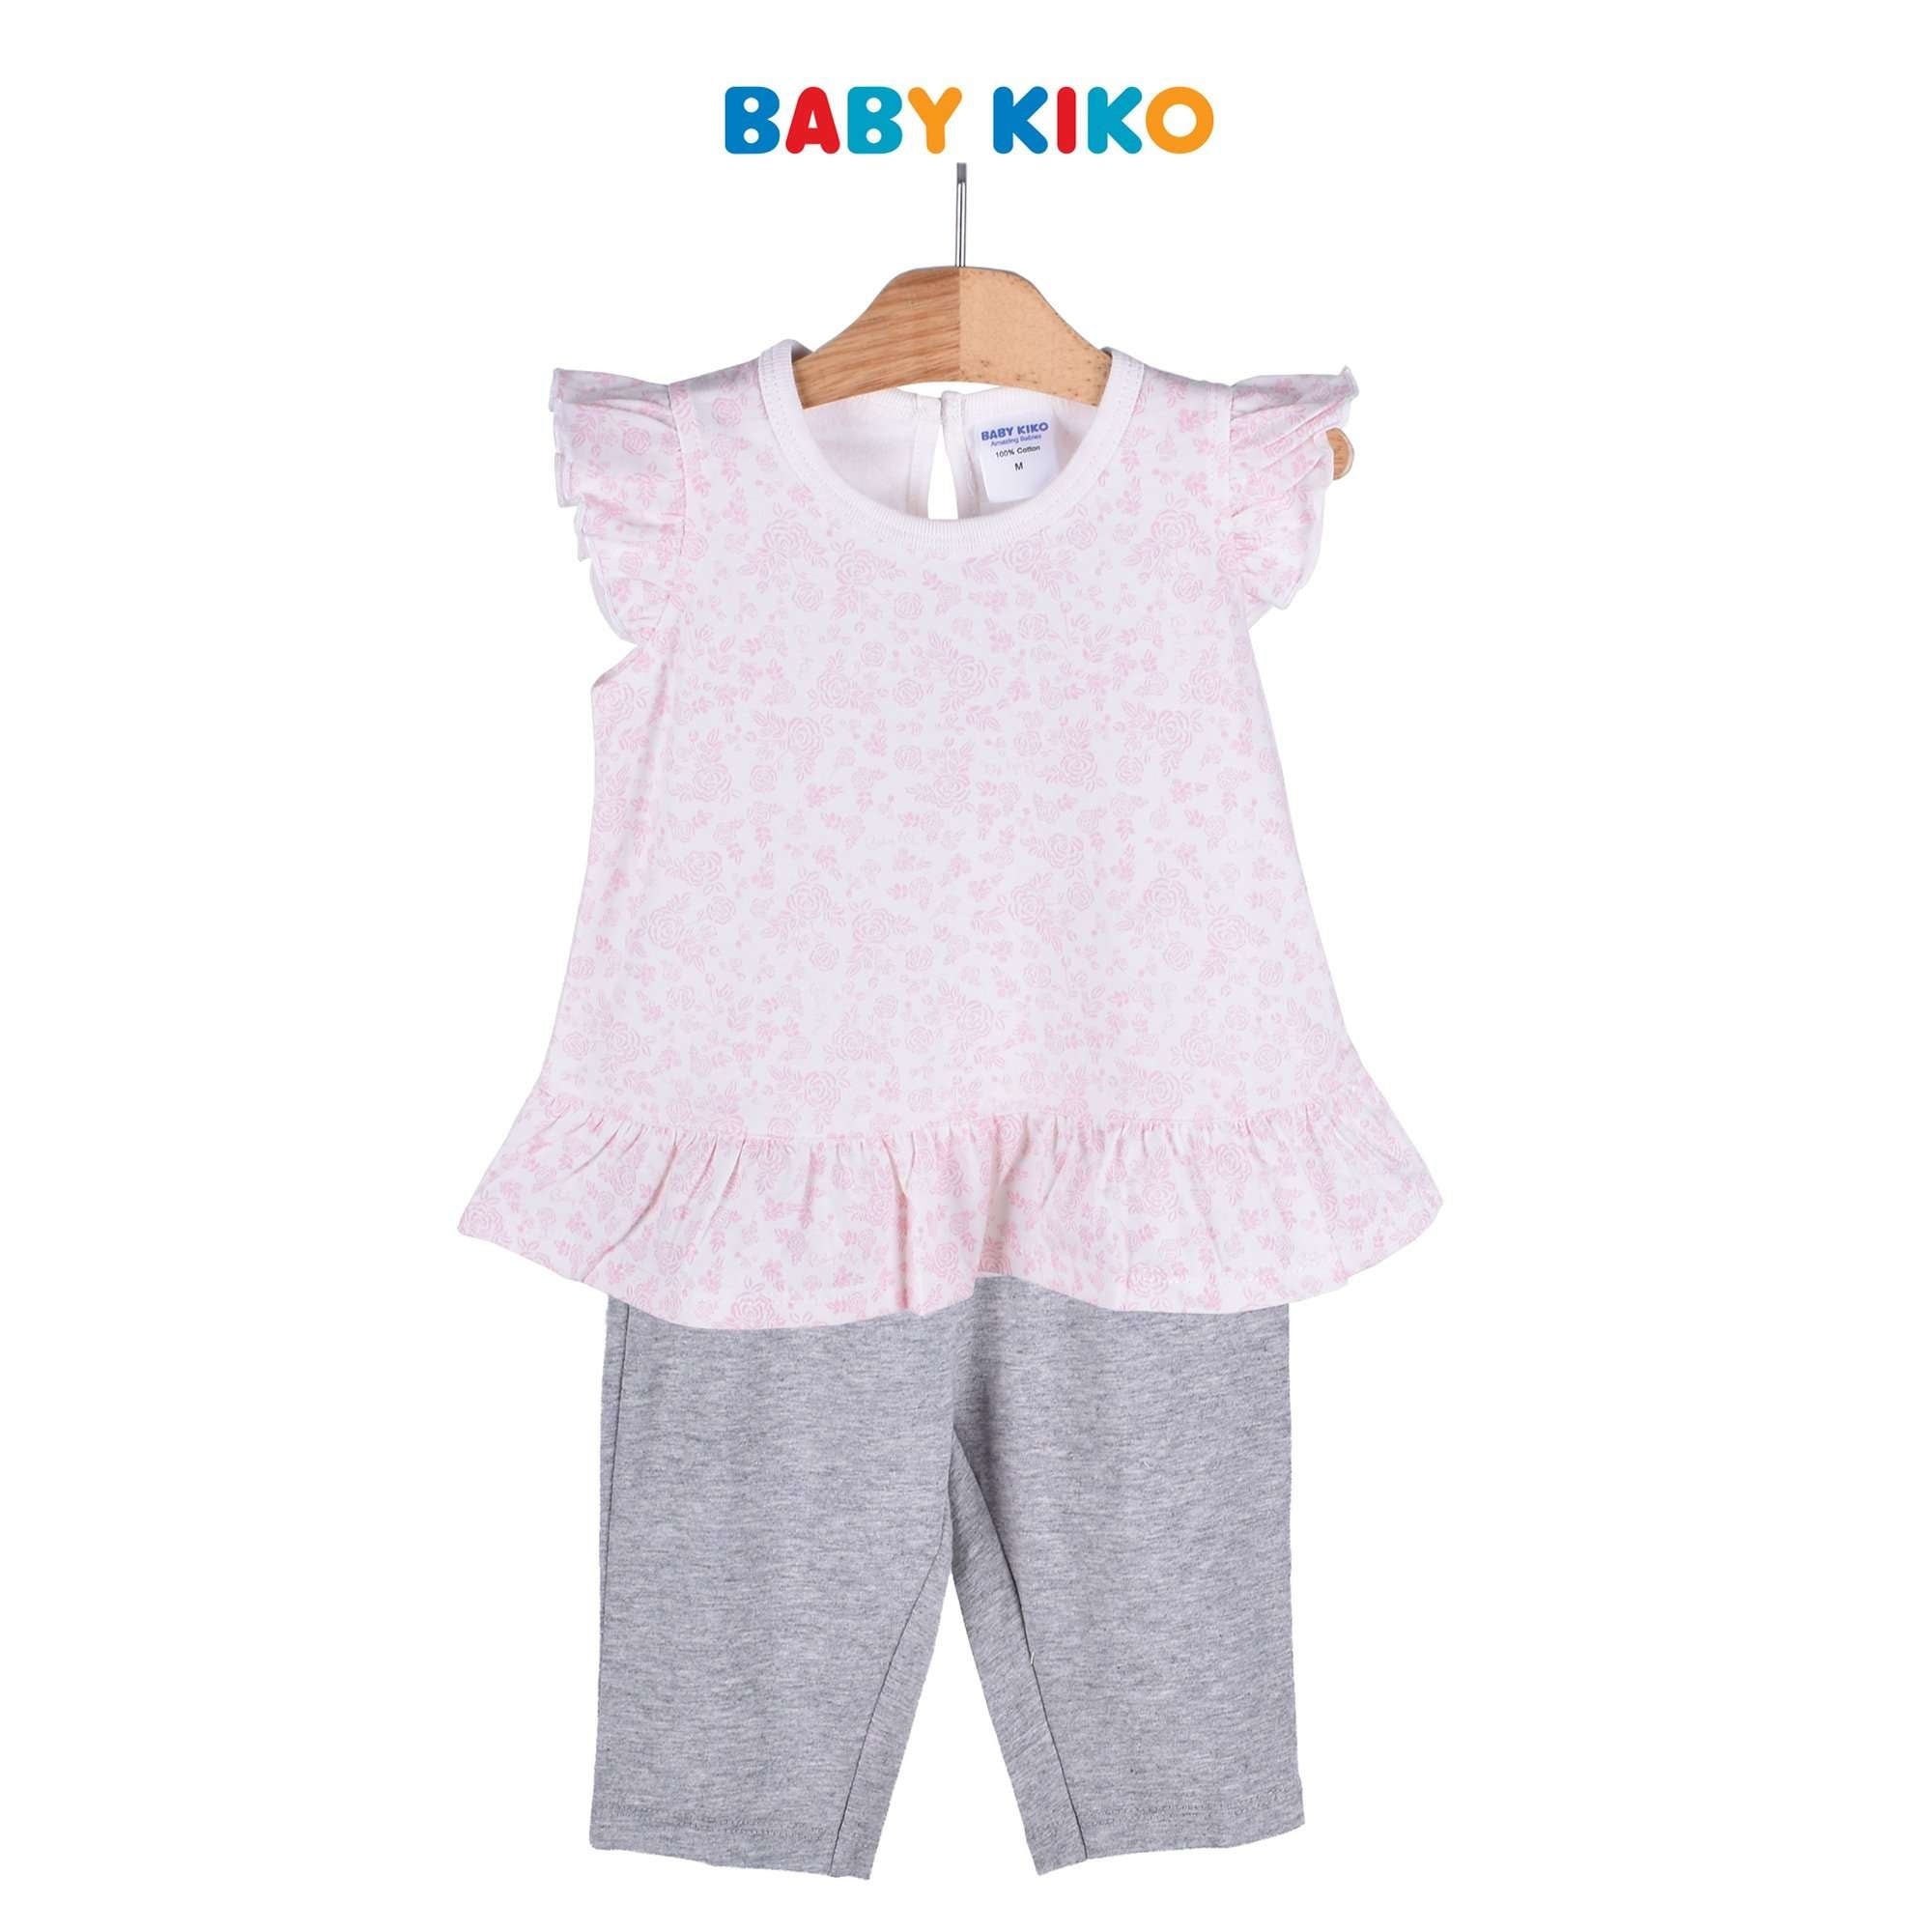 Baby KIKO Toddler Girl Sleeveless Long Pants Suit - Pink 325131-401 : Buy Baby KIKO online at CMG.MY